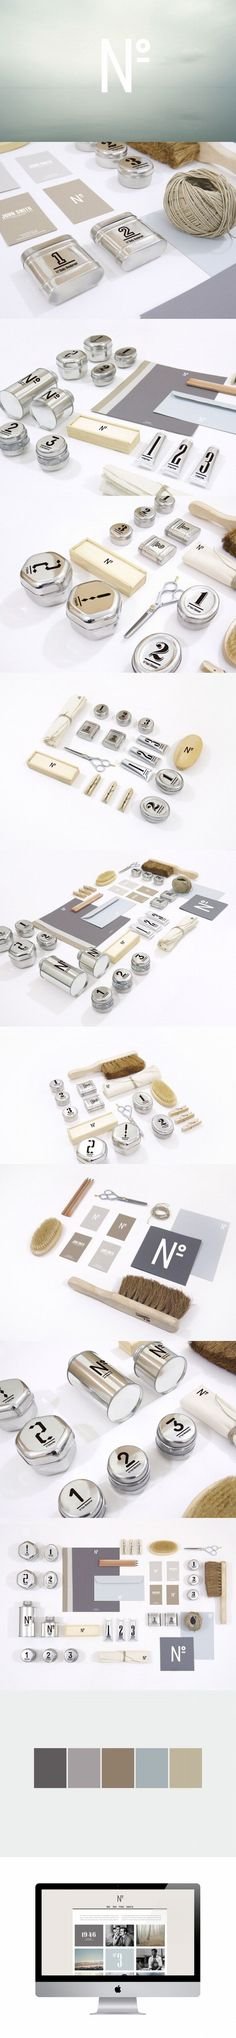 Branding and packaging inspiration